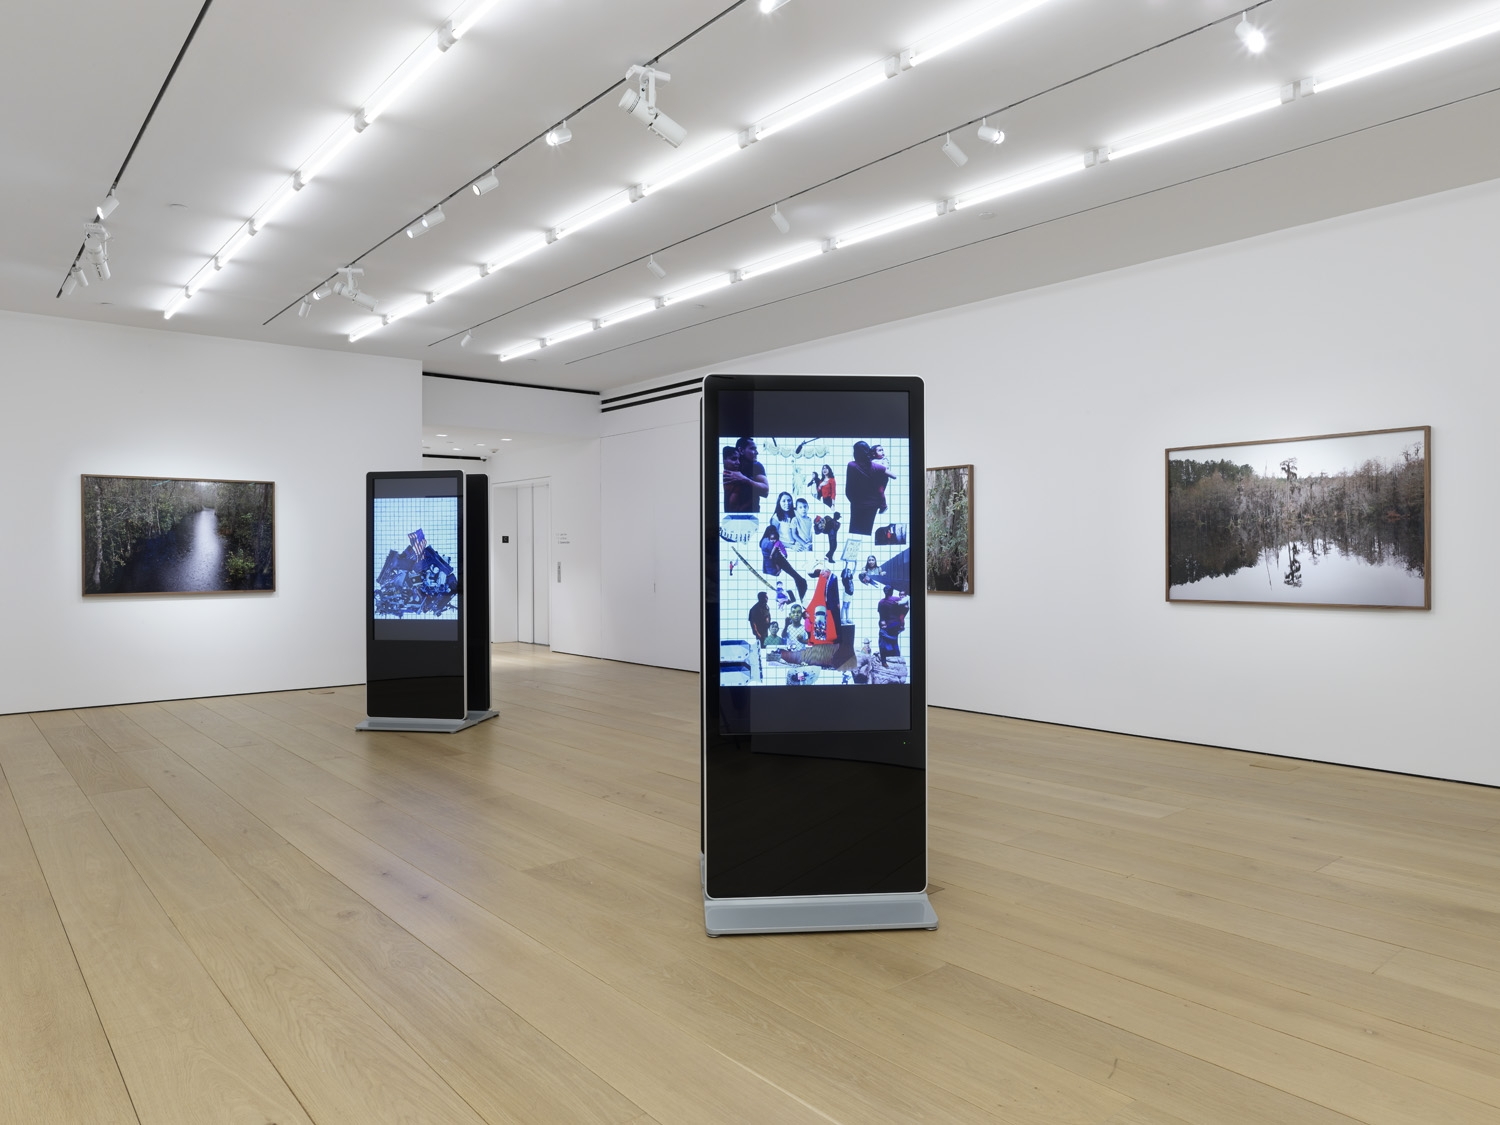 First installation view of the exhibition Catherine Opie: Rhetorical Landscapes at Lehmann Maupin New York